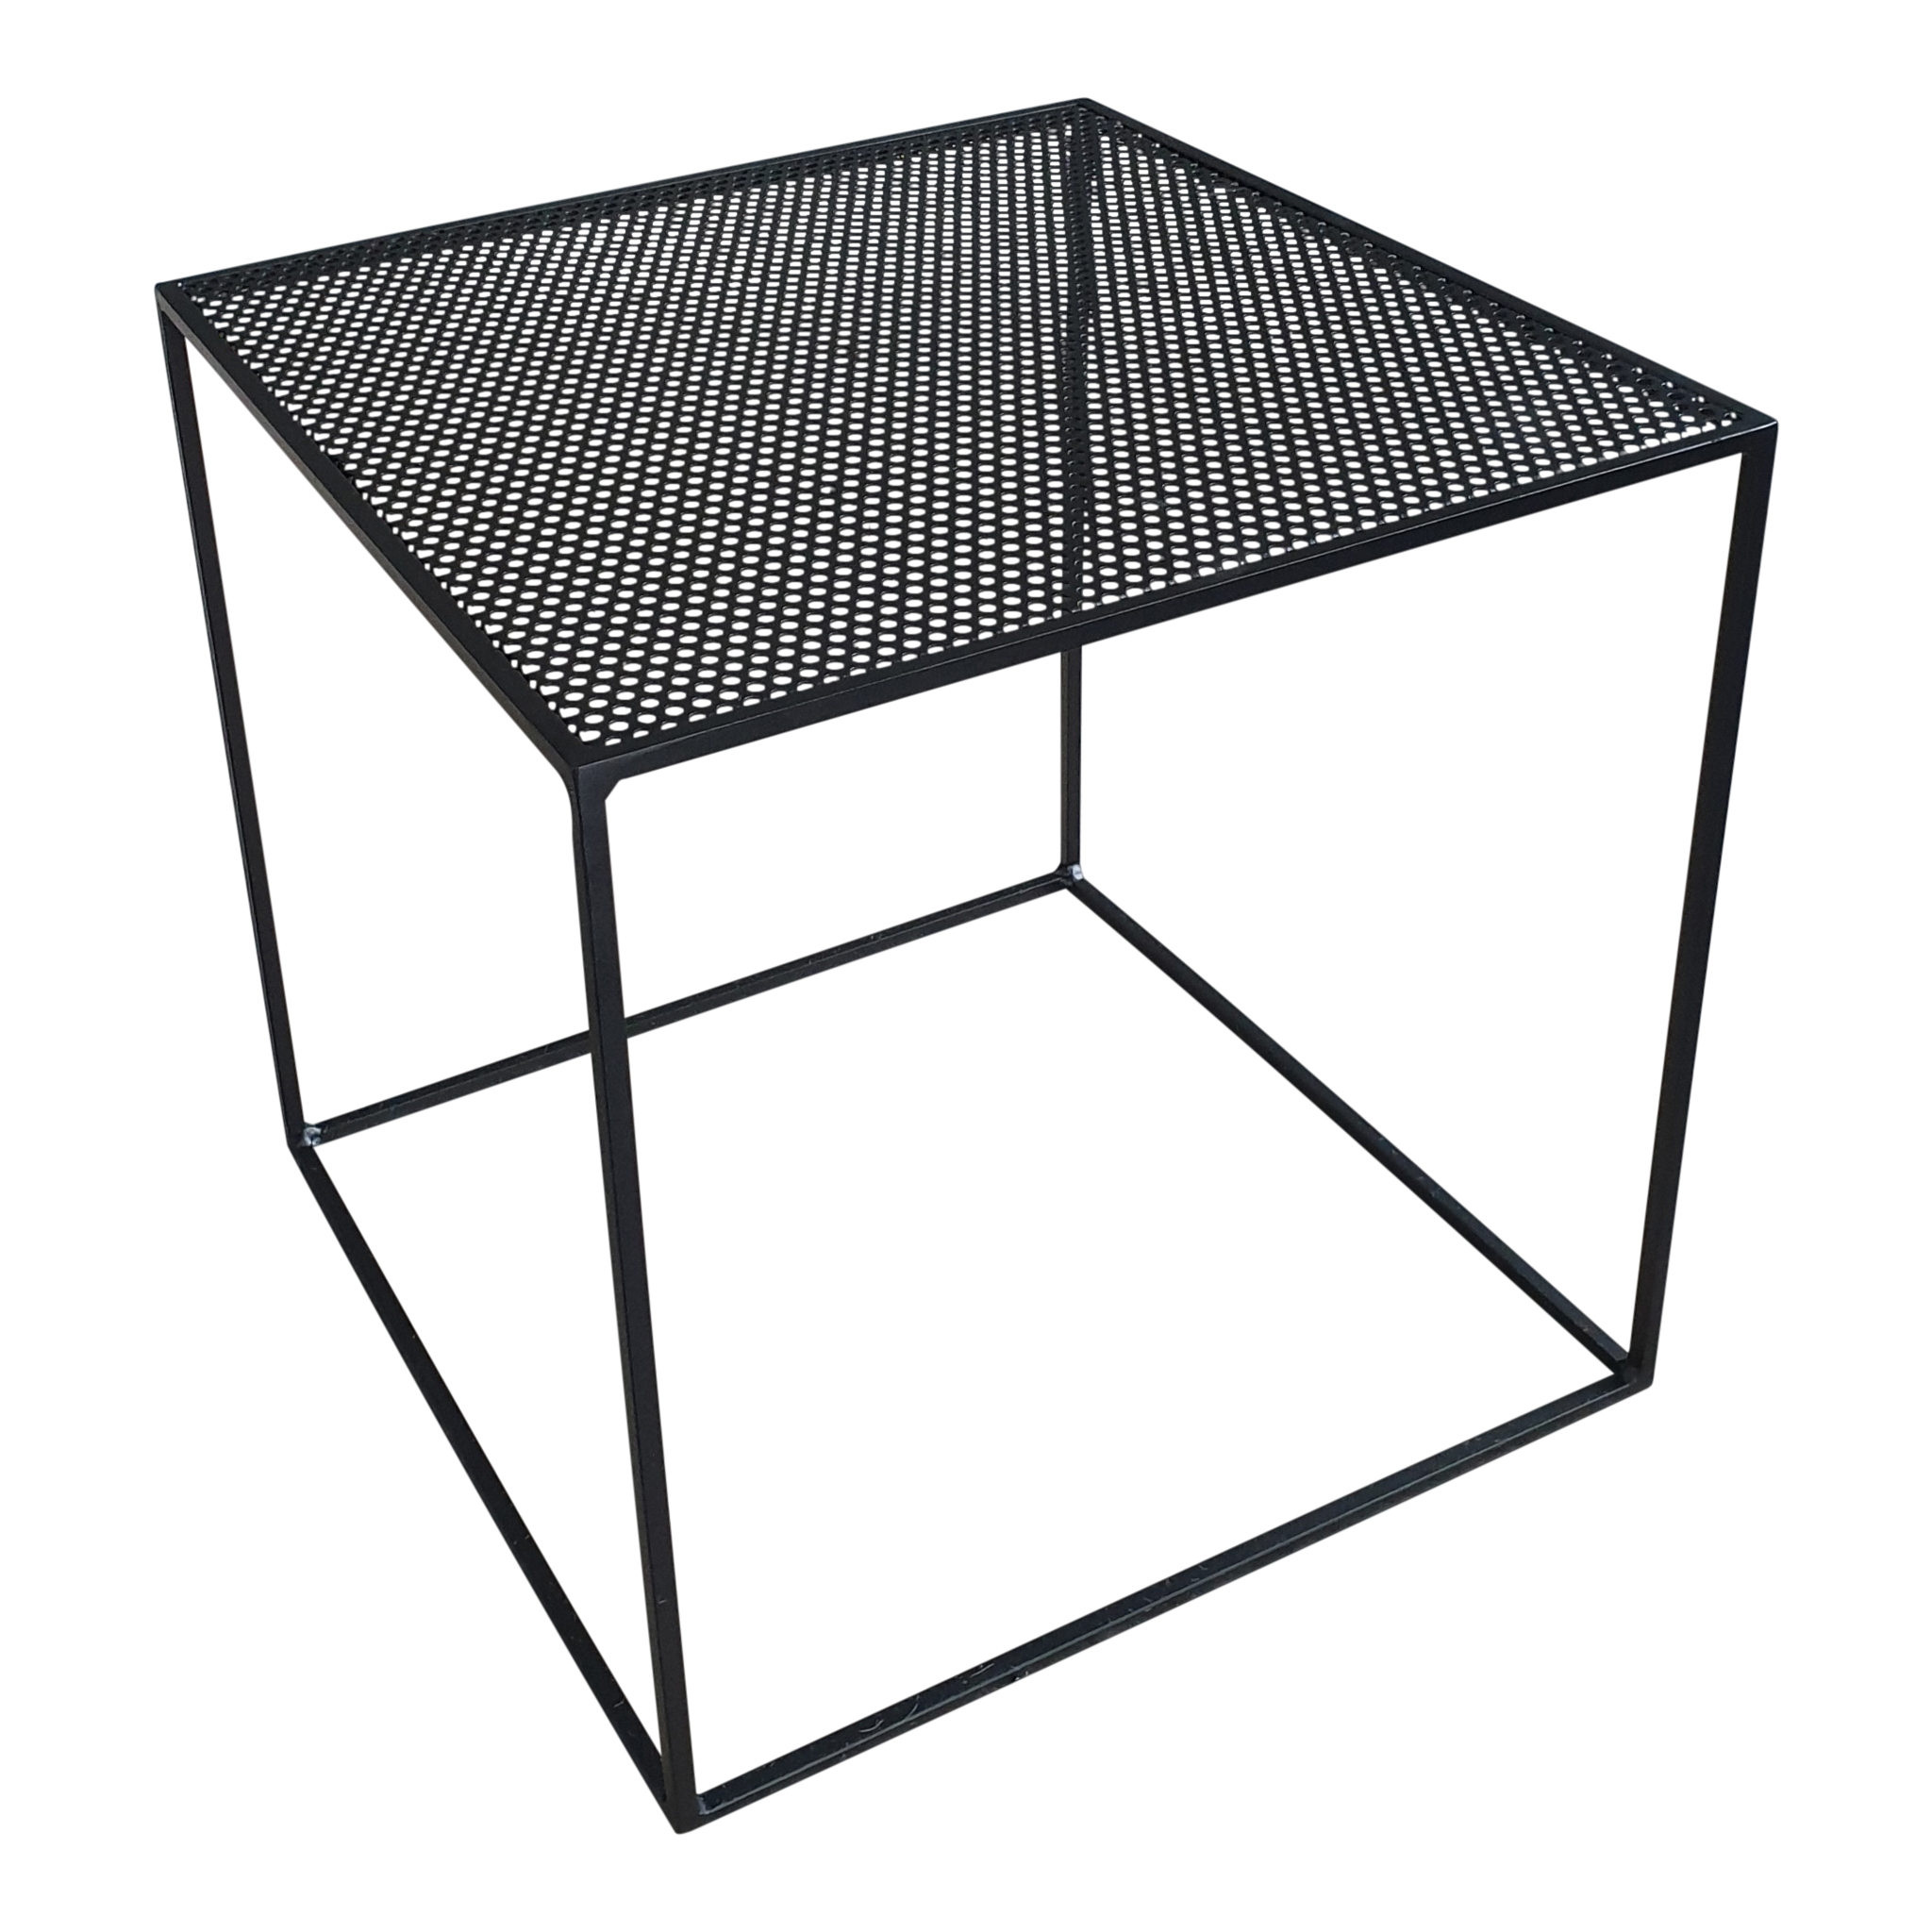 Stoer Metaal side table Juut, black